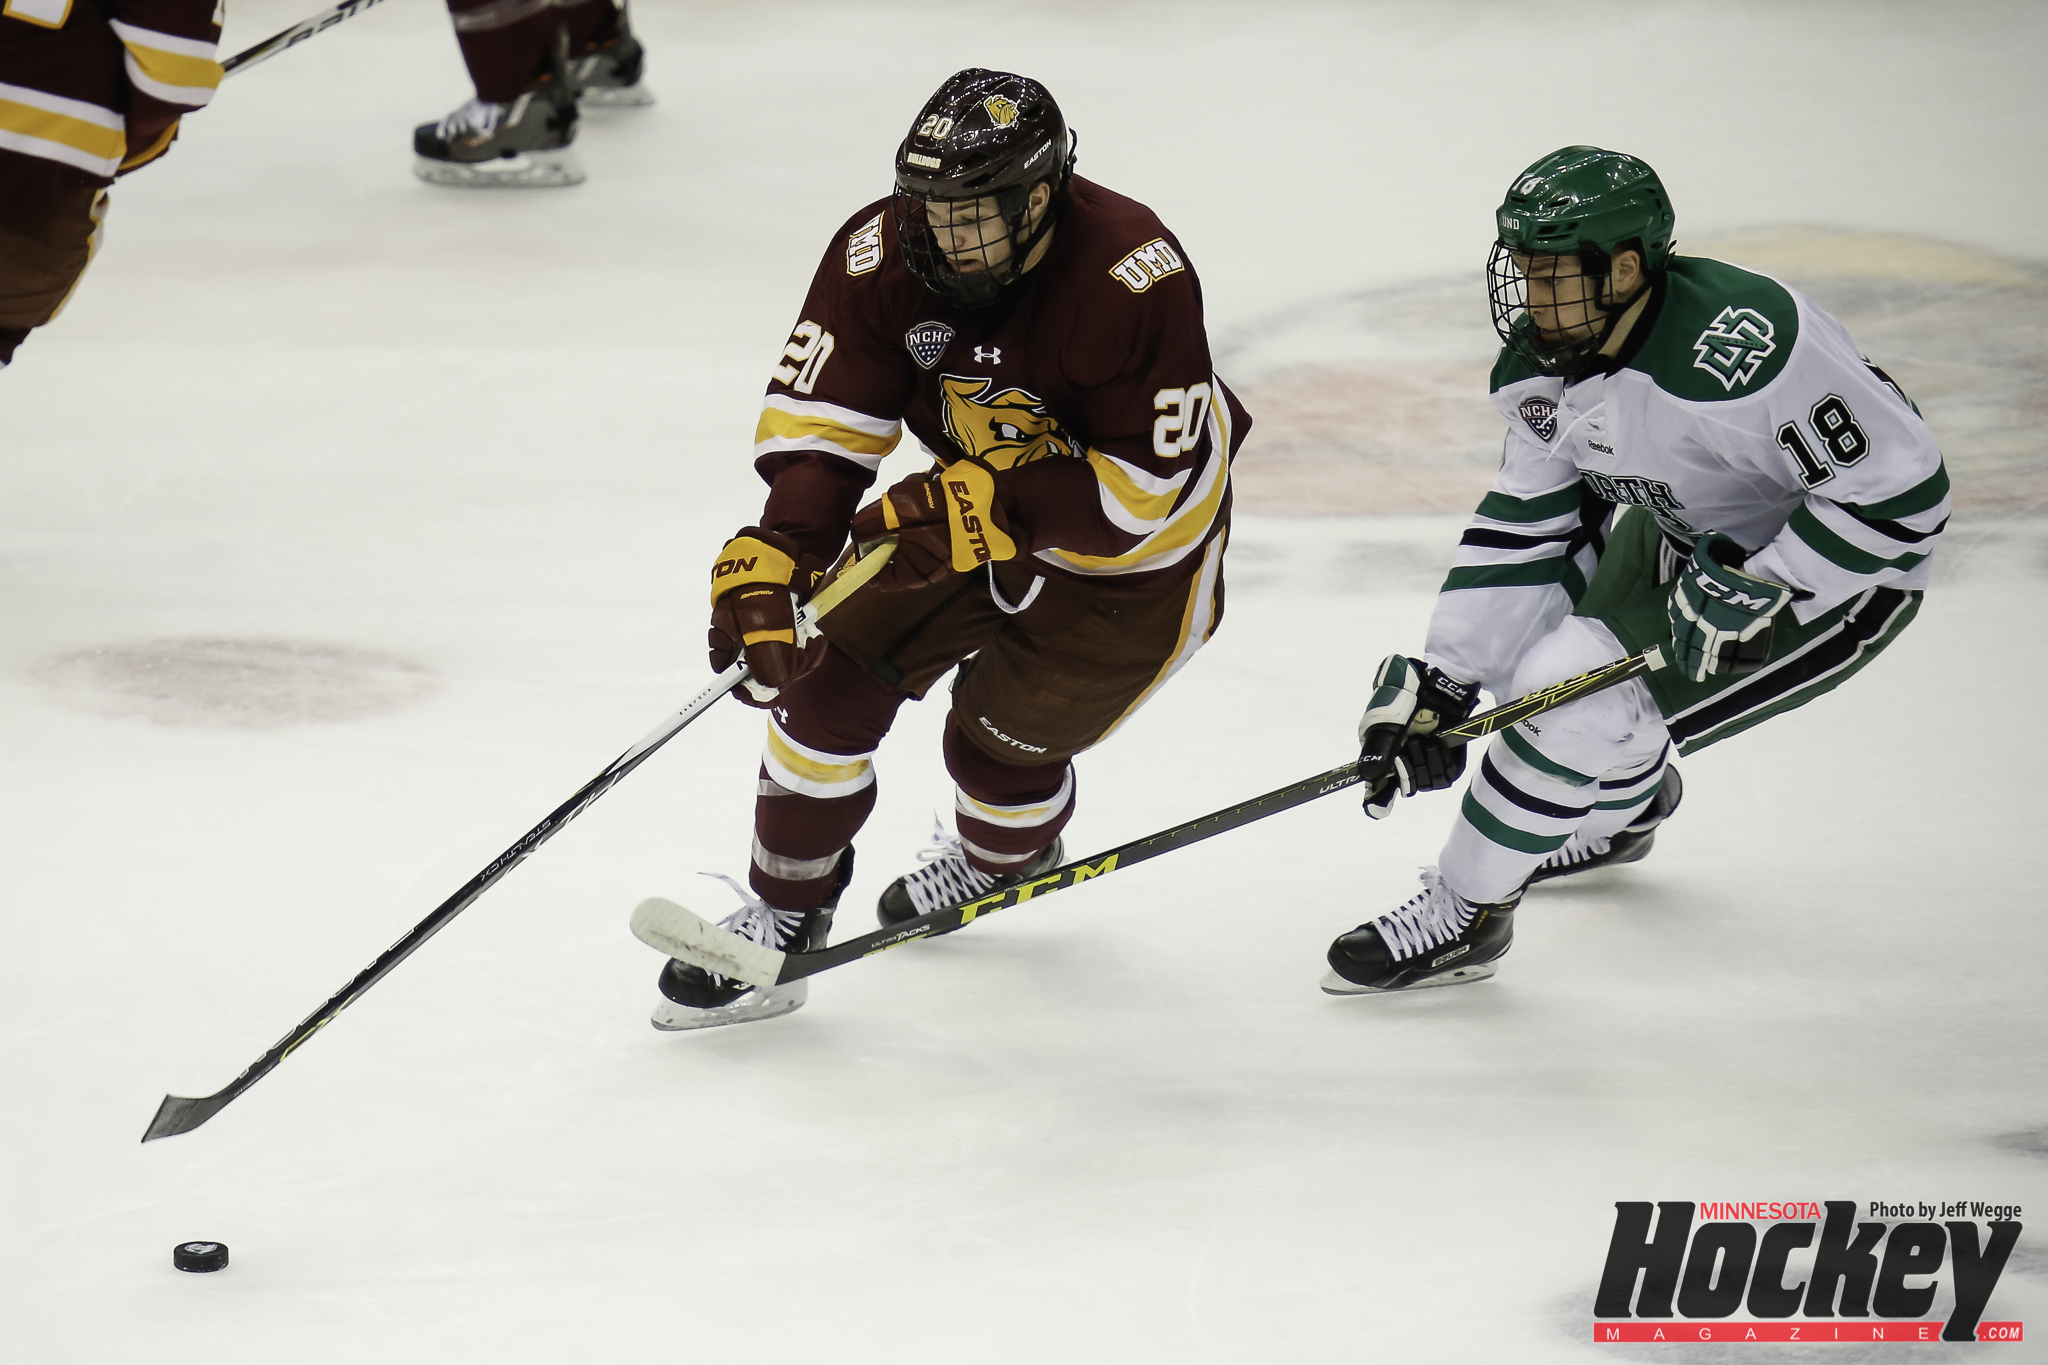 Minnesota Duluth Season Preview